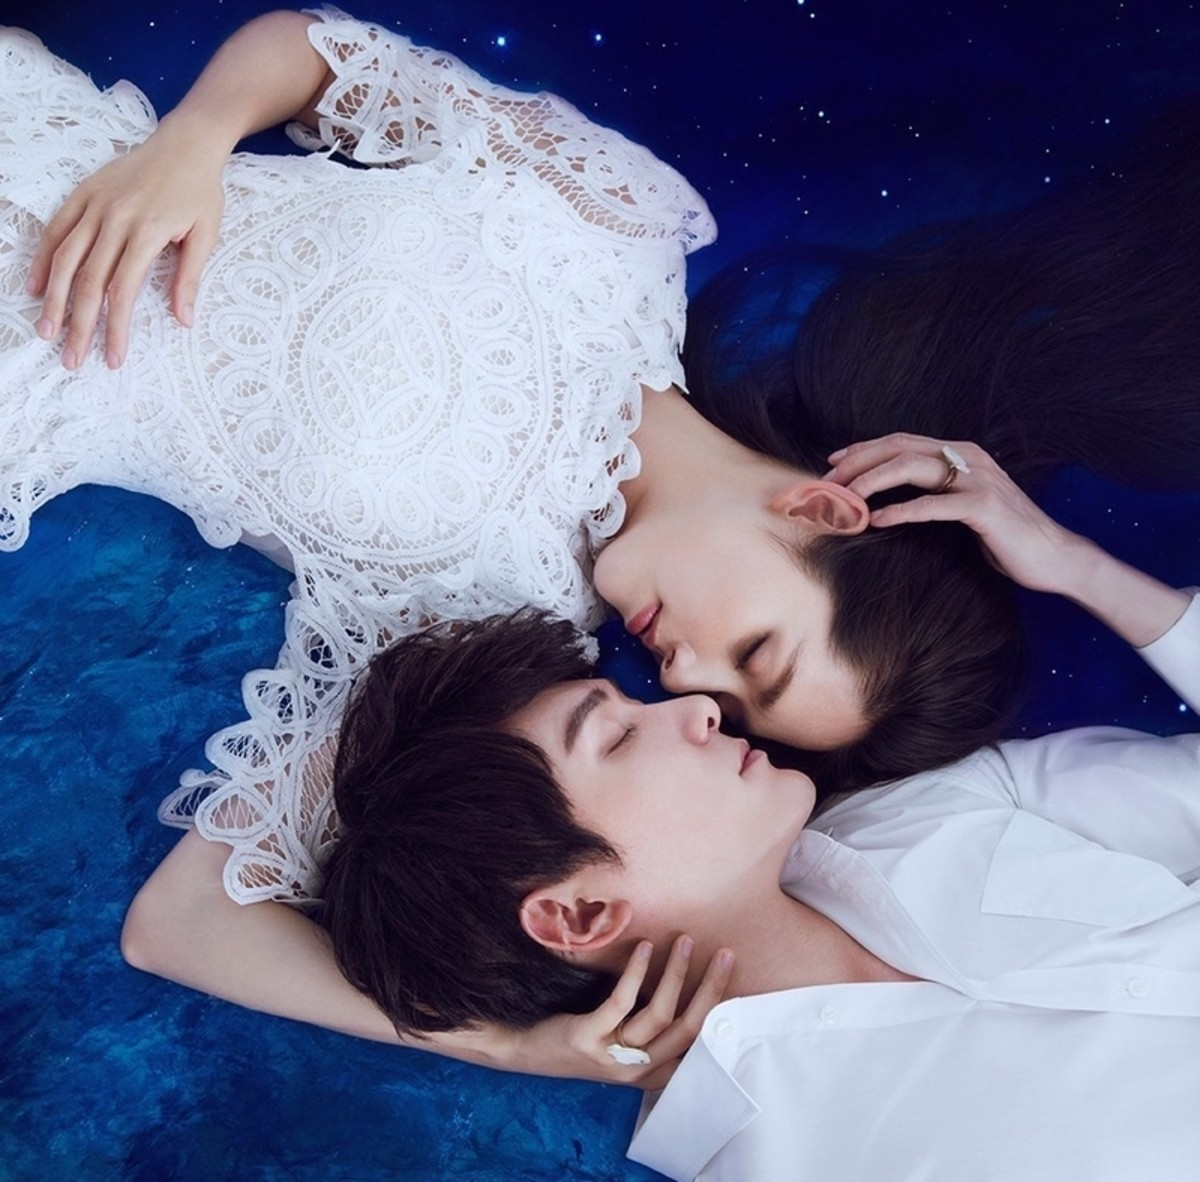 The Starry Night, The Starry Sea | The Top 11 Most Romantic Chinese Dramas